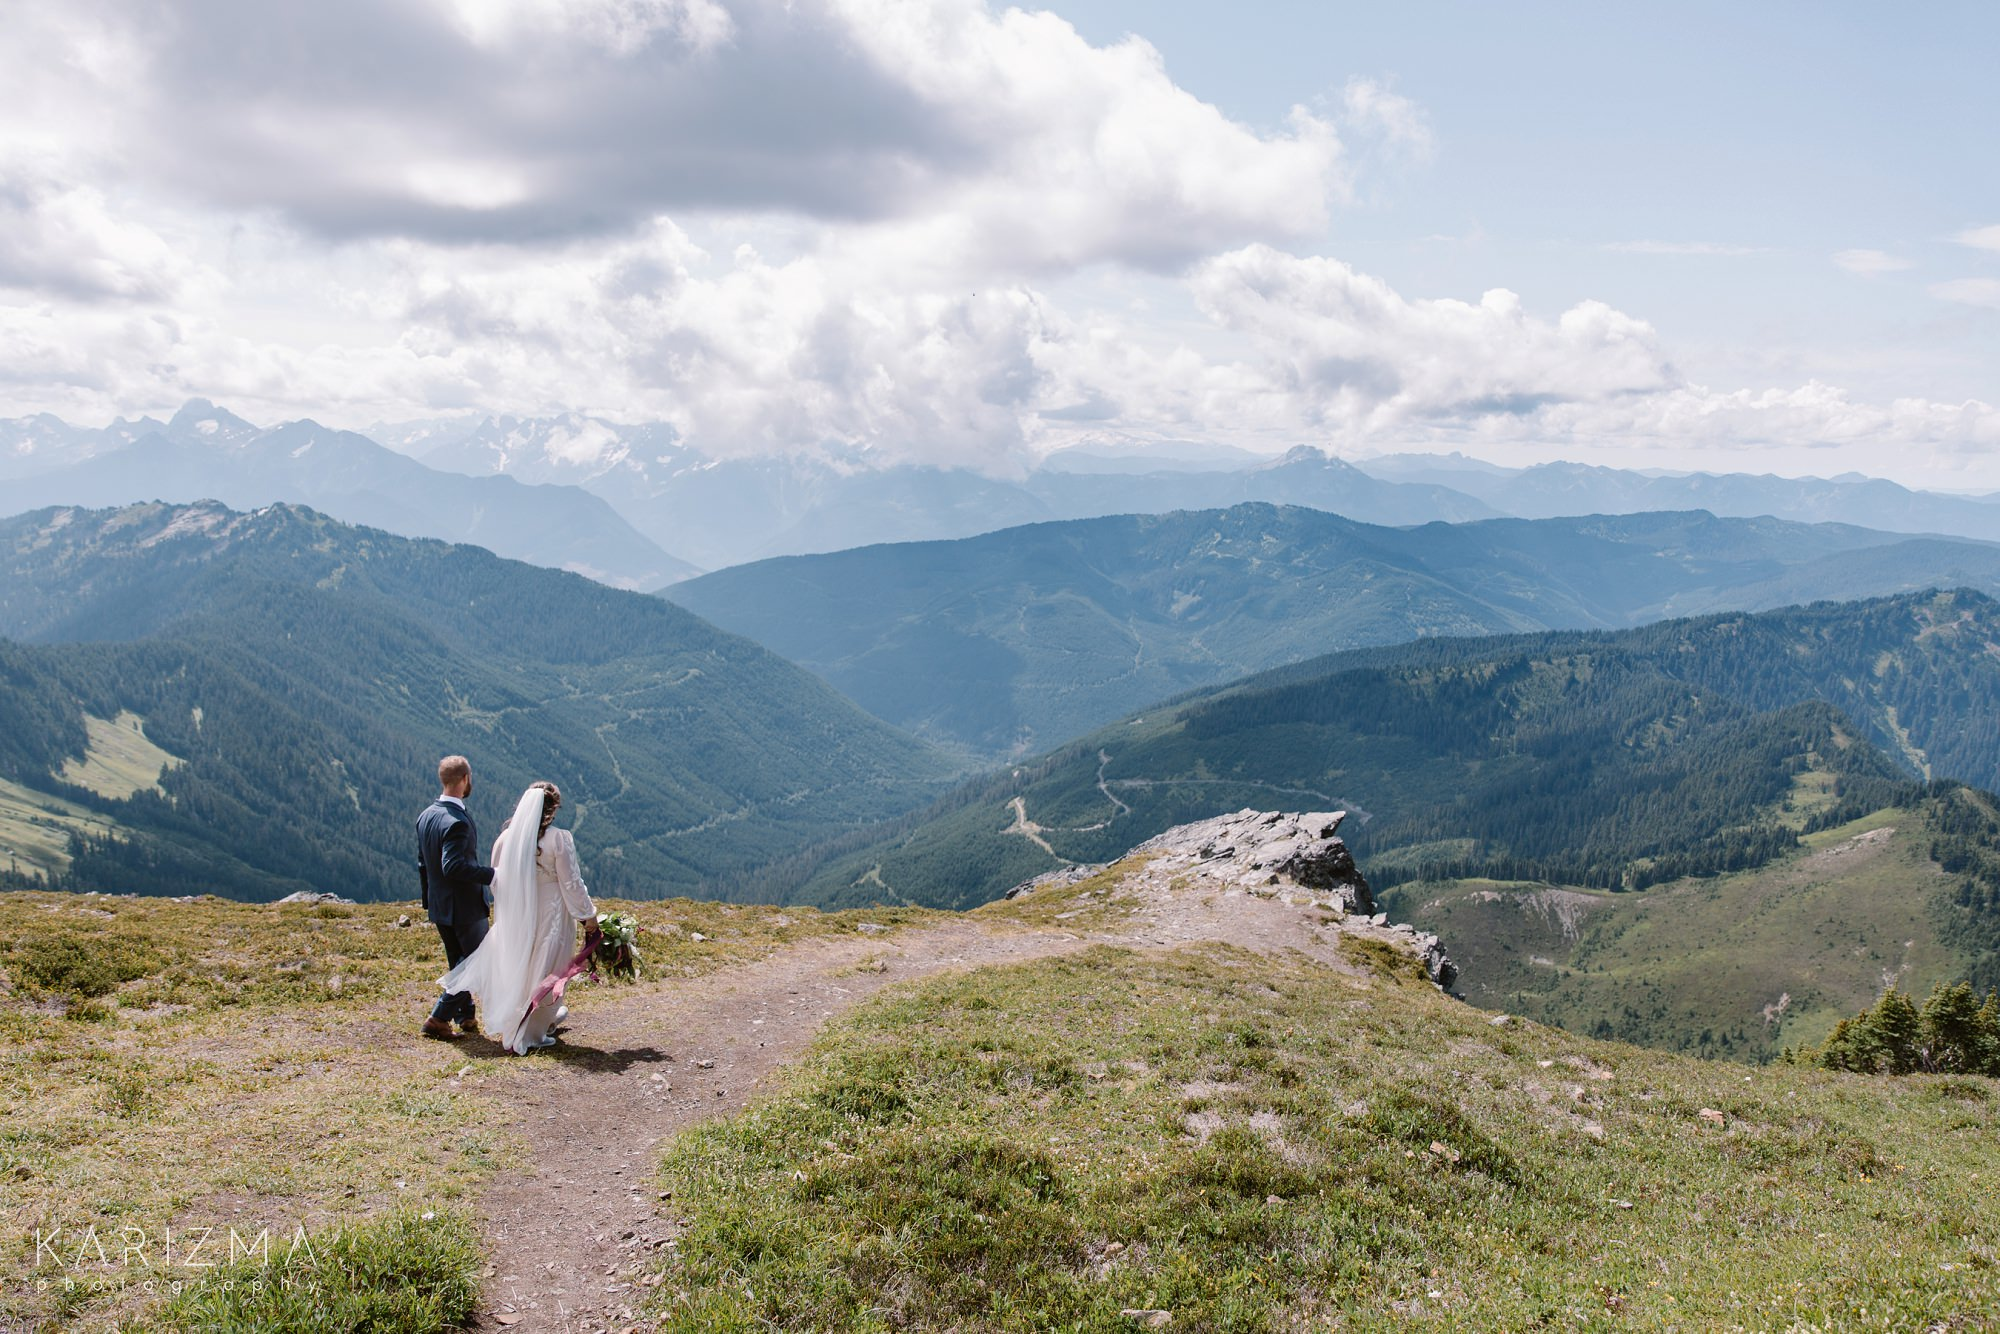 Bride and groom are walking to the location of their mountain elopement ceremony